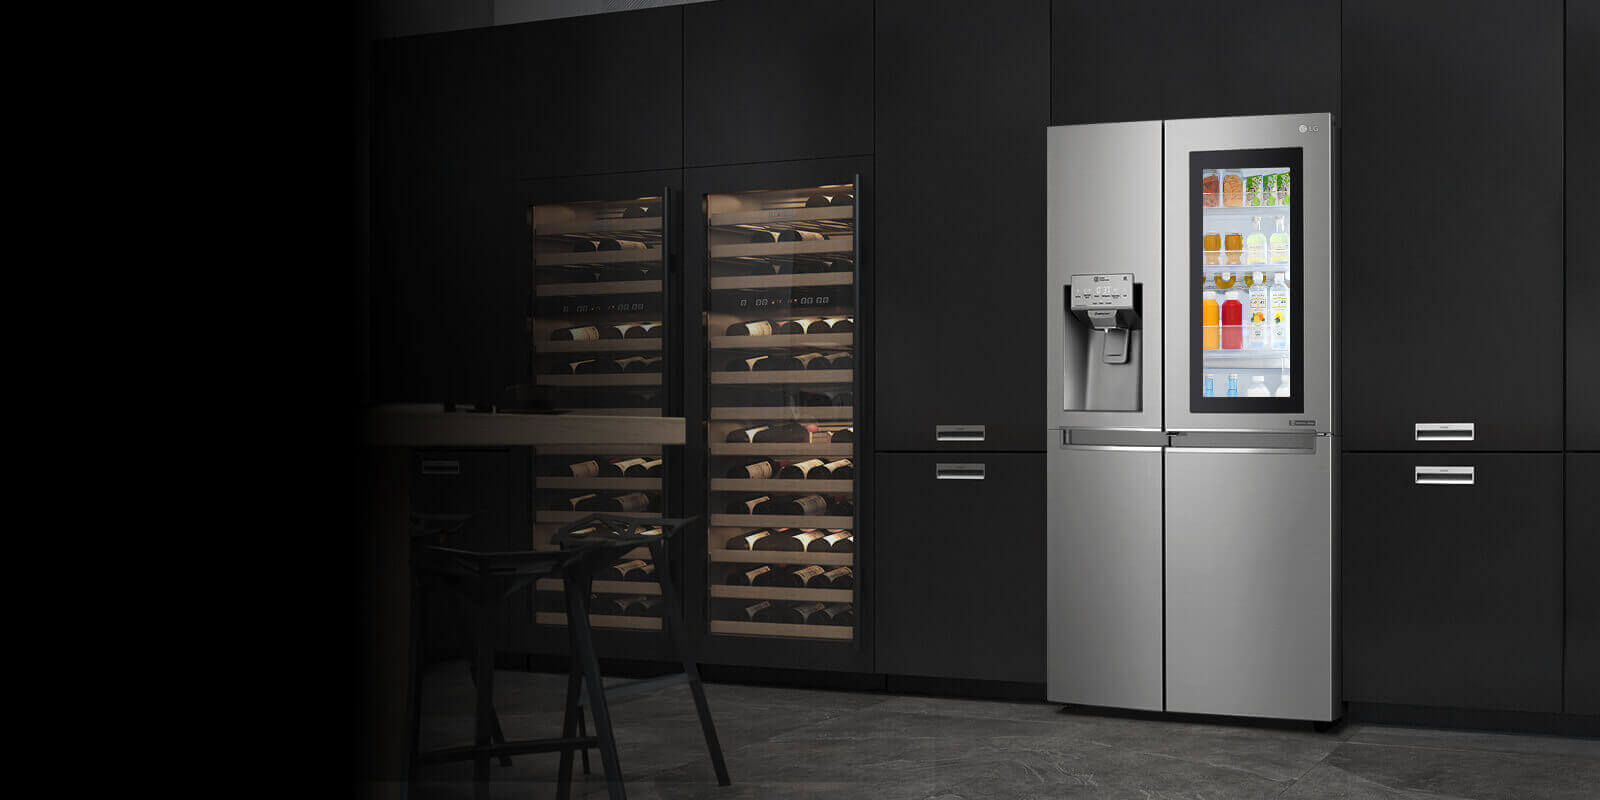 Inbouw Koelkast Diepvries Combinatie Find Spacious & Innovatively Designed Fridge Freezers | Lg